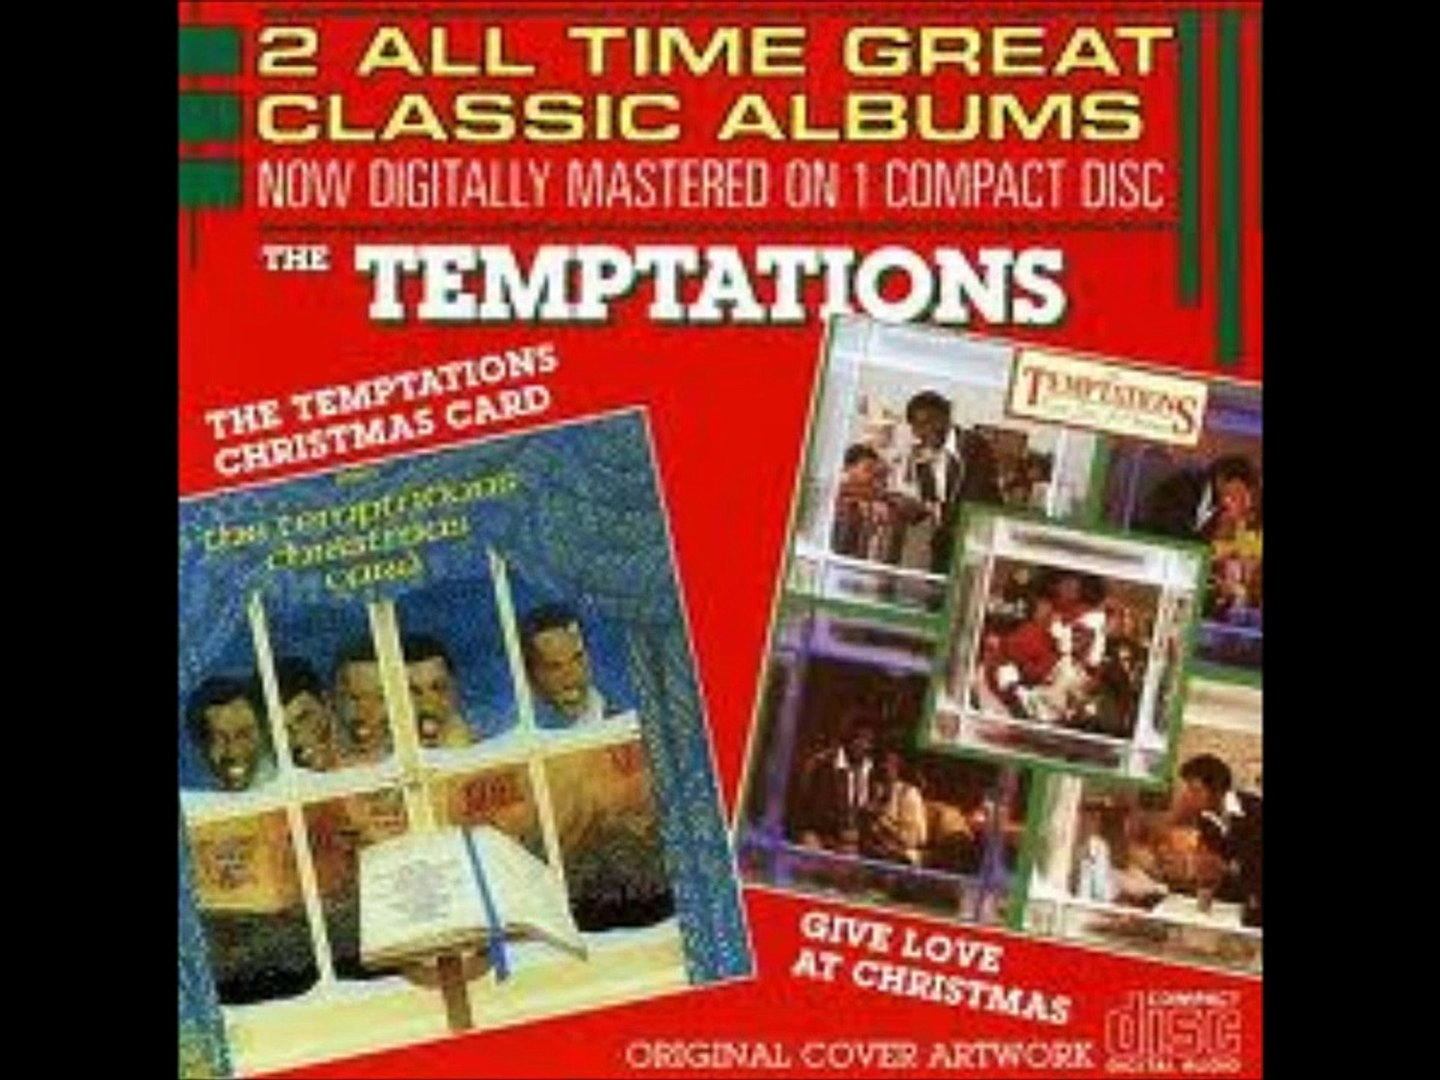 Temptations Christmas.This Christmas The Temptations